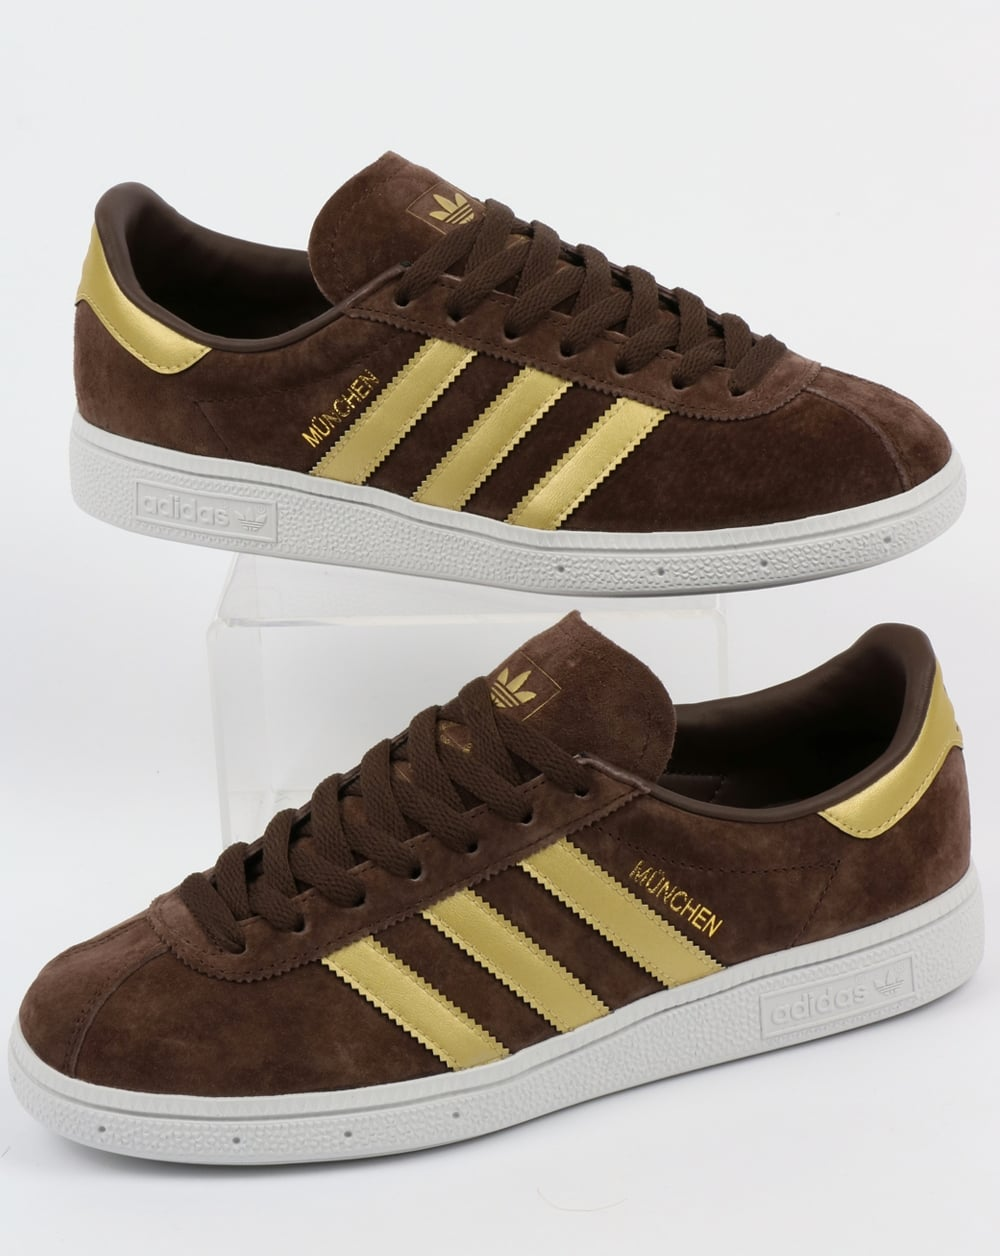 check out 71bcd 11edf adidas Trainers Adidas Munchen Trainers Brown Gold